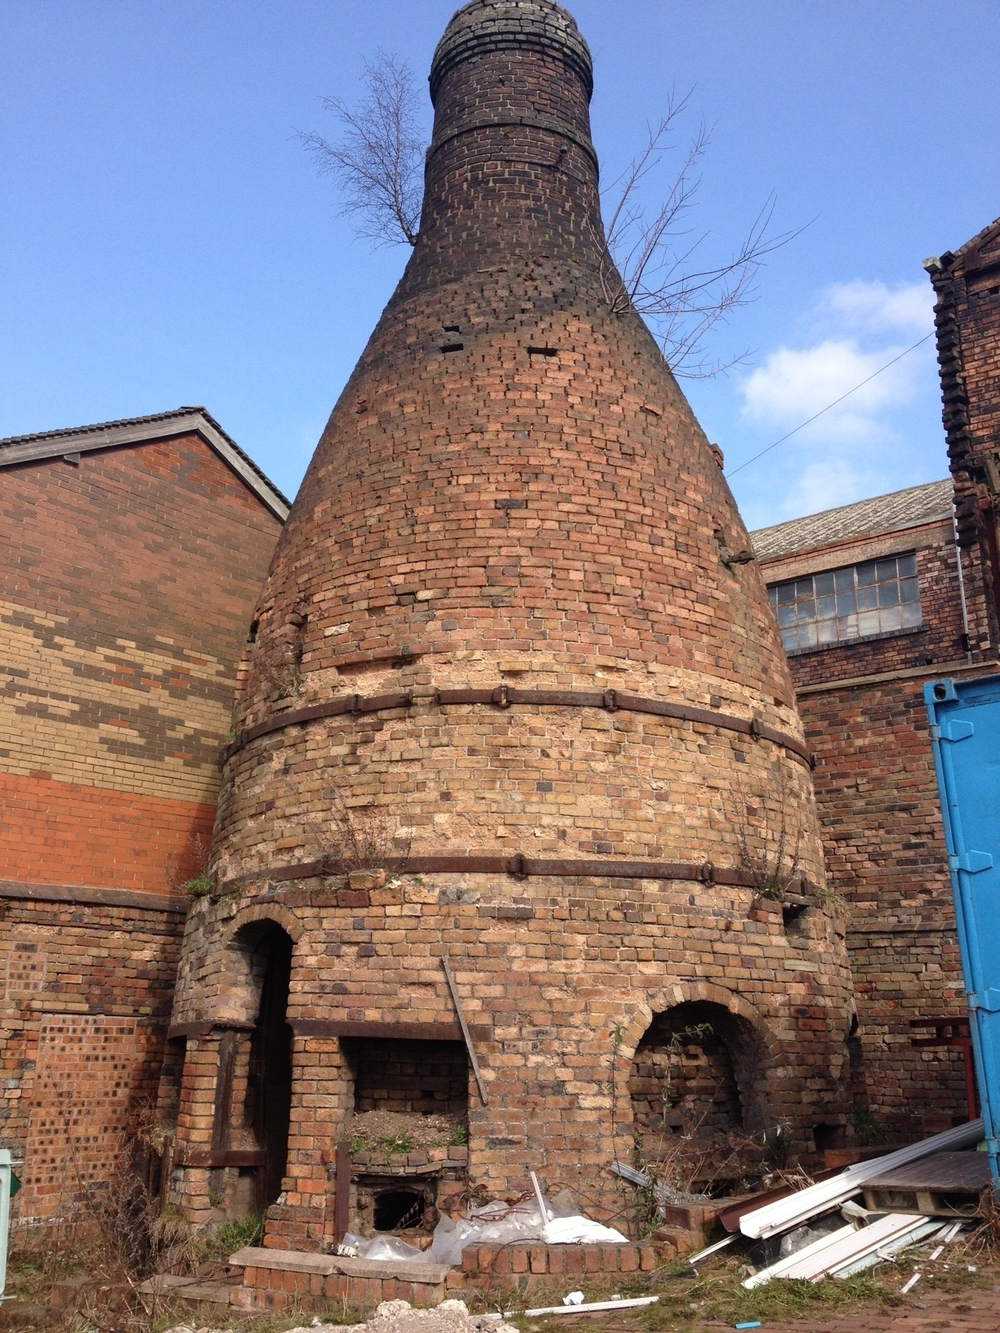 traditional bottle kiln in Longton, Stoke on Trent